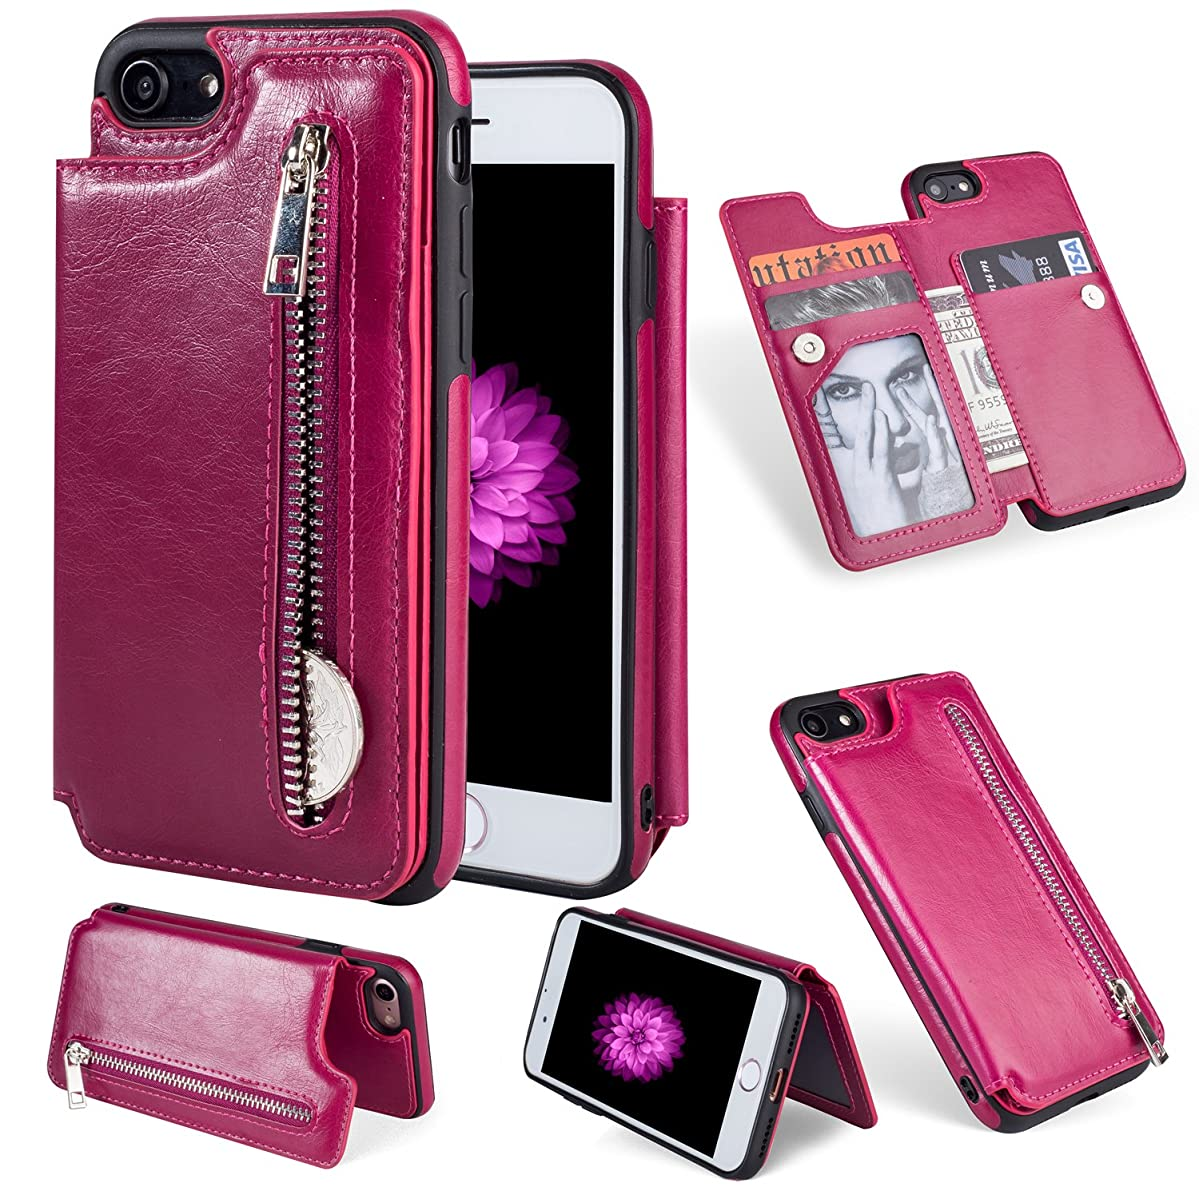 Wallet Case for iPhone 8,iPhone 7 Case,Magenta PU Leather Stand Case,Ostop Credit Card Holder Zipper Purse Slim Fit Magnetic Clasp Flip Folio Cover with Cash Pocket Soft TPU Bumper Shell